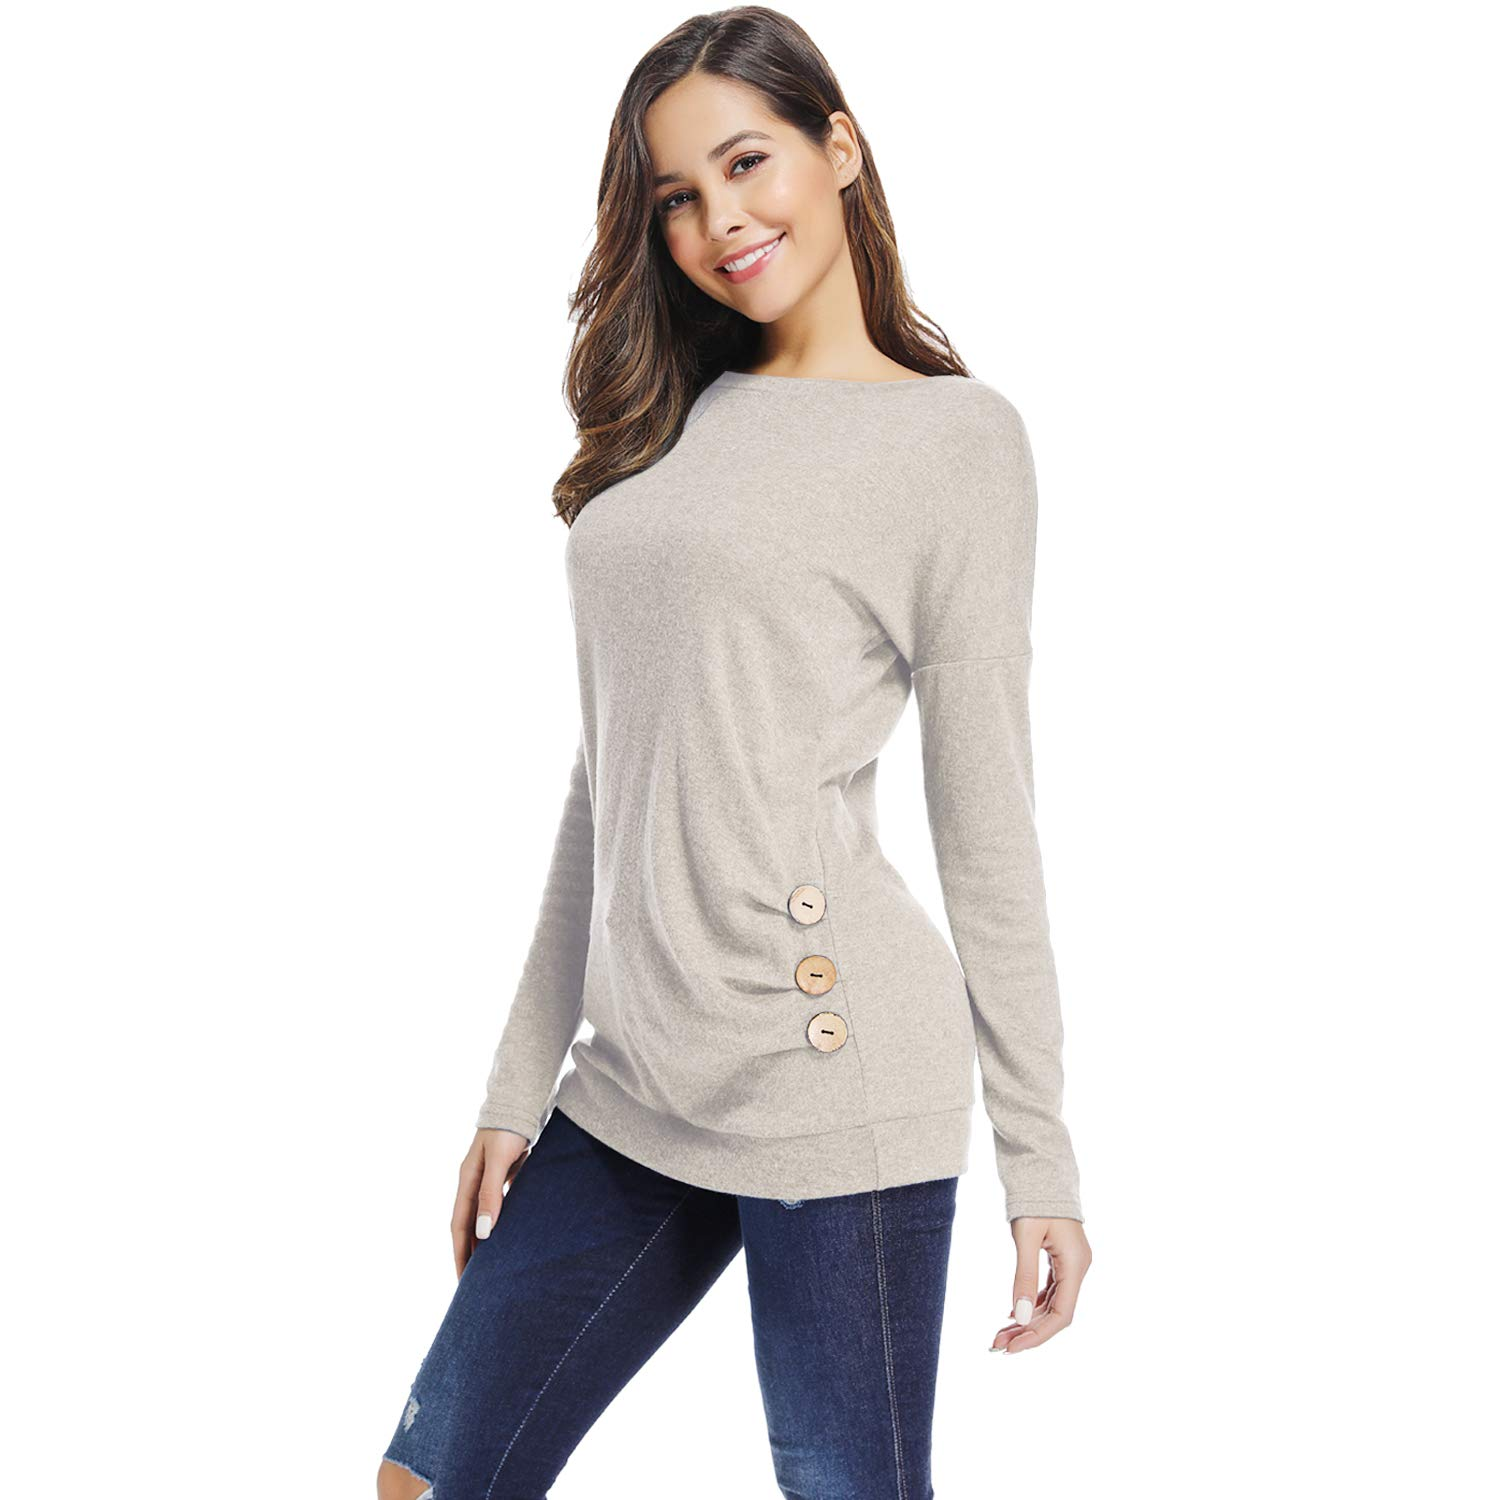 67776eb903478 Sunfung Women s Casual Long Sleeve Clothing Round Neck Loose Tops Tees Blouses  Tunics at Amazon Women s Clothing store